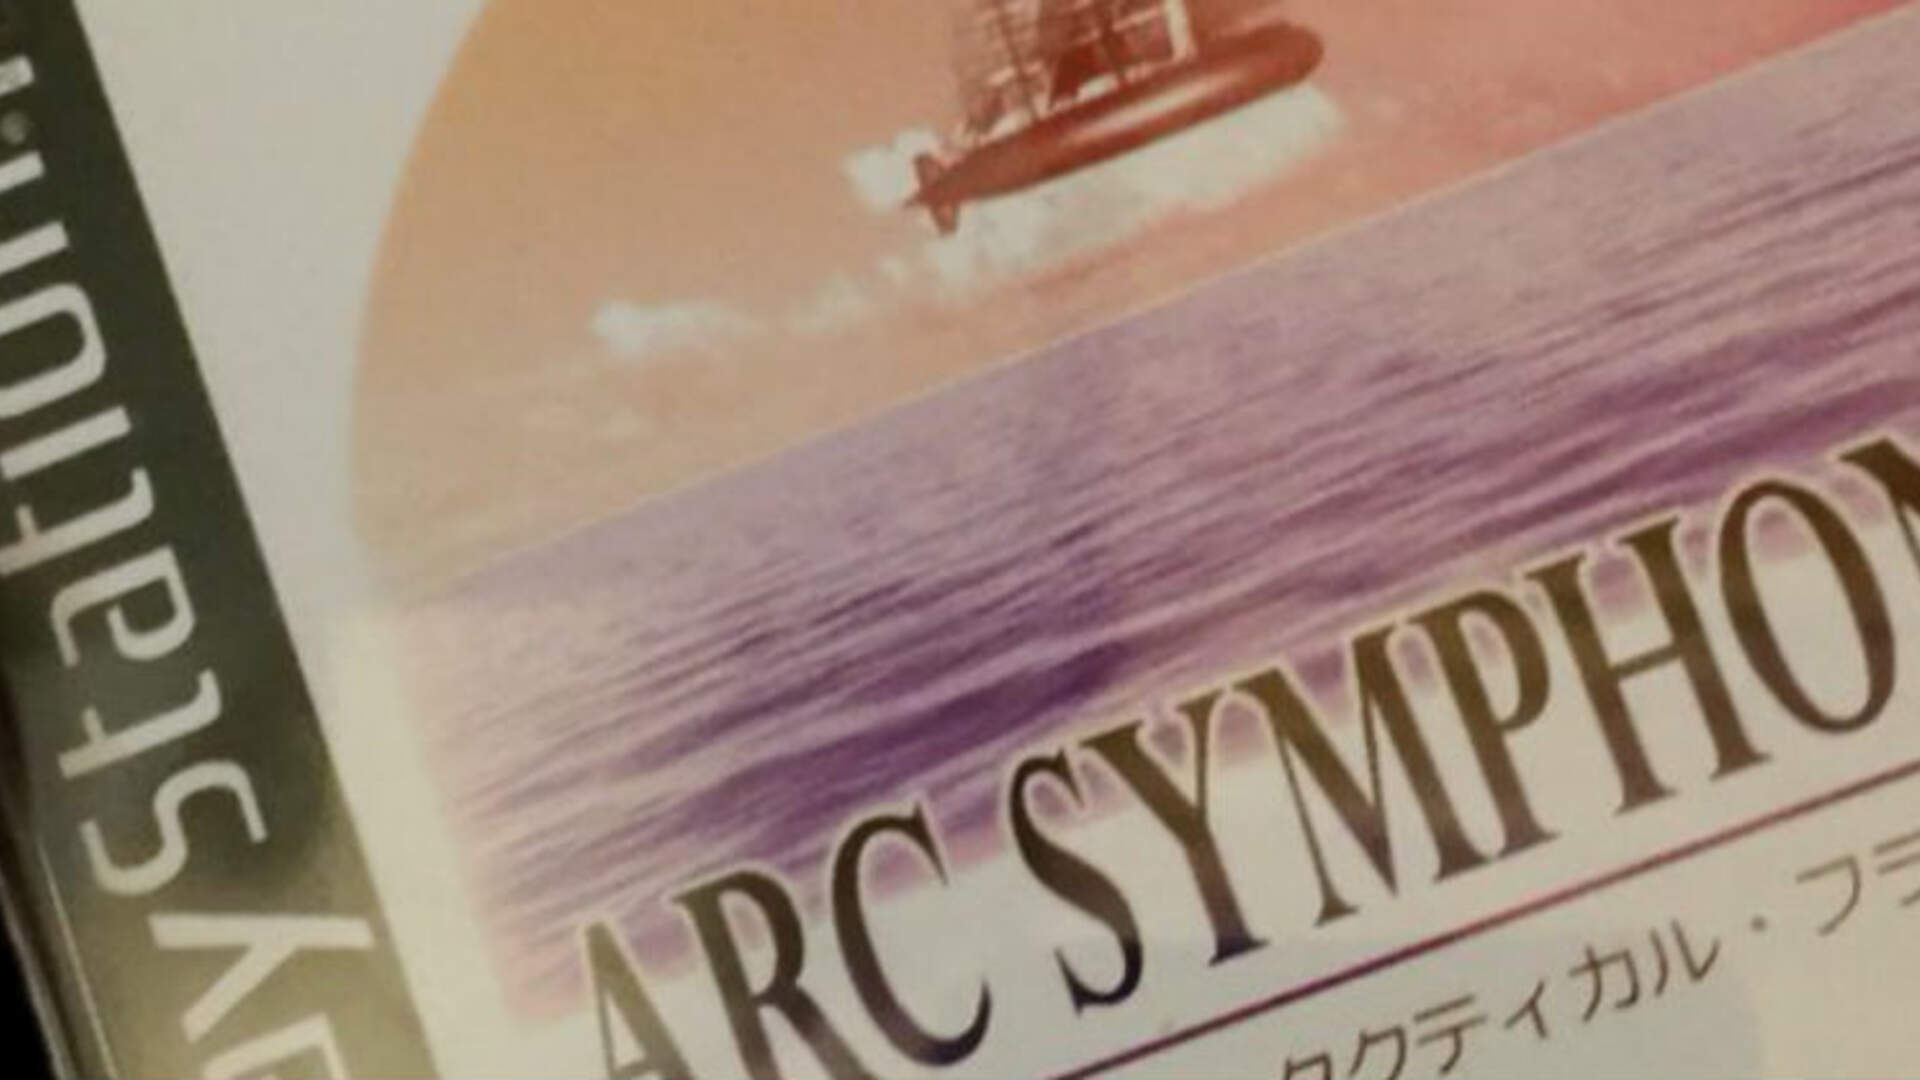 Arc Symphony is a Very Real, Very Fake Retro PS1 Game That Fooled Twitter